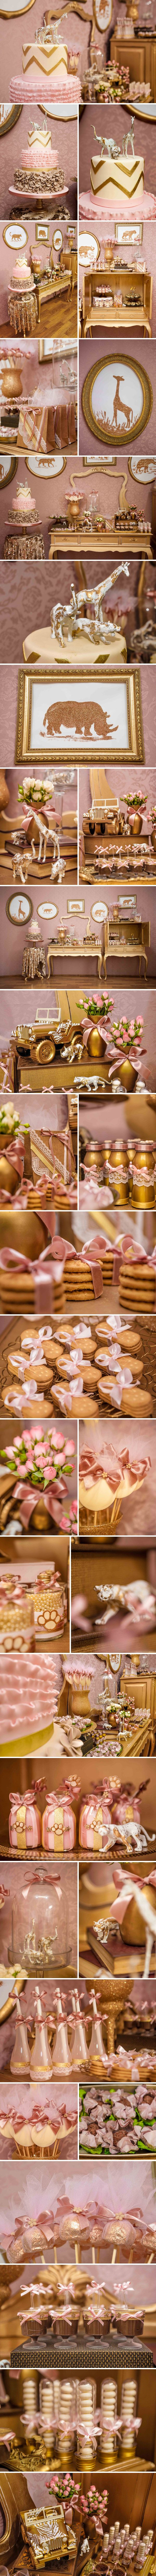 Safari Party Ideas. Glamour party for girls with pink and gold.